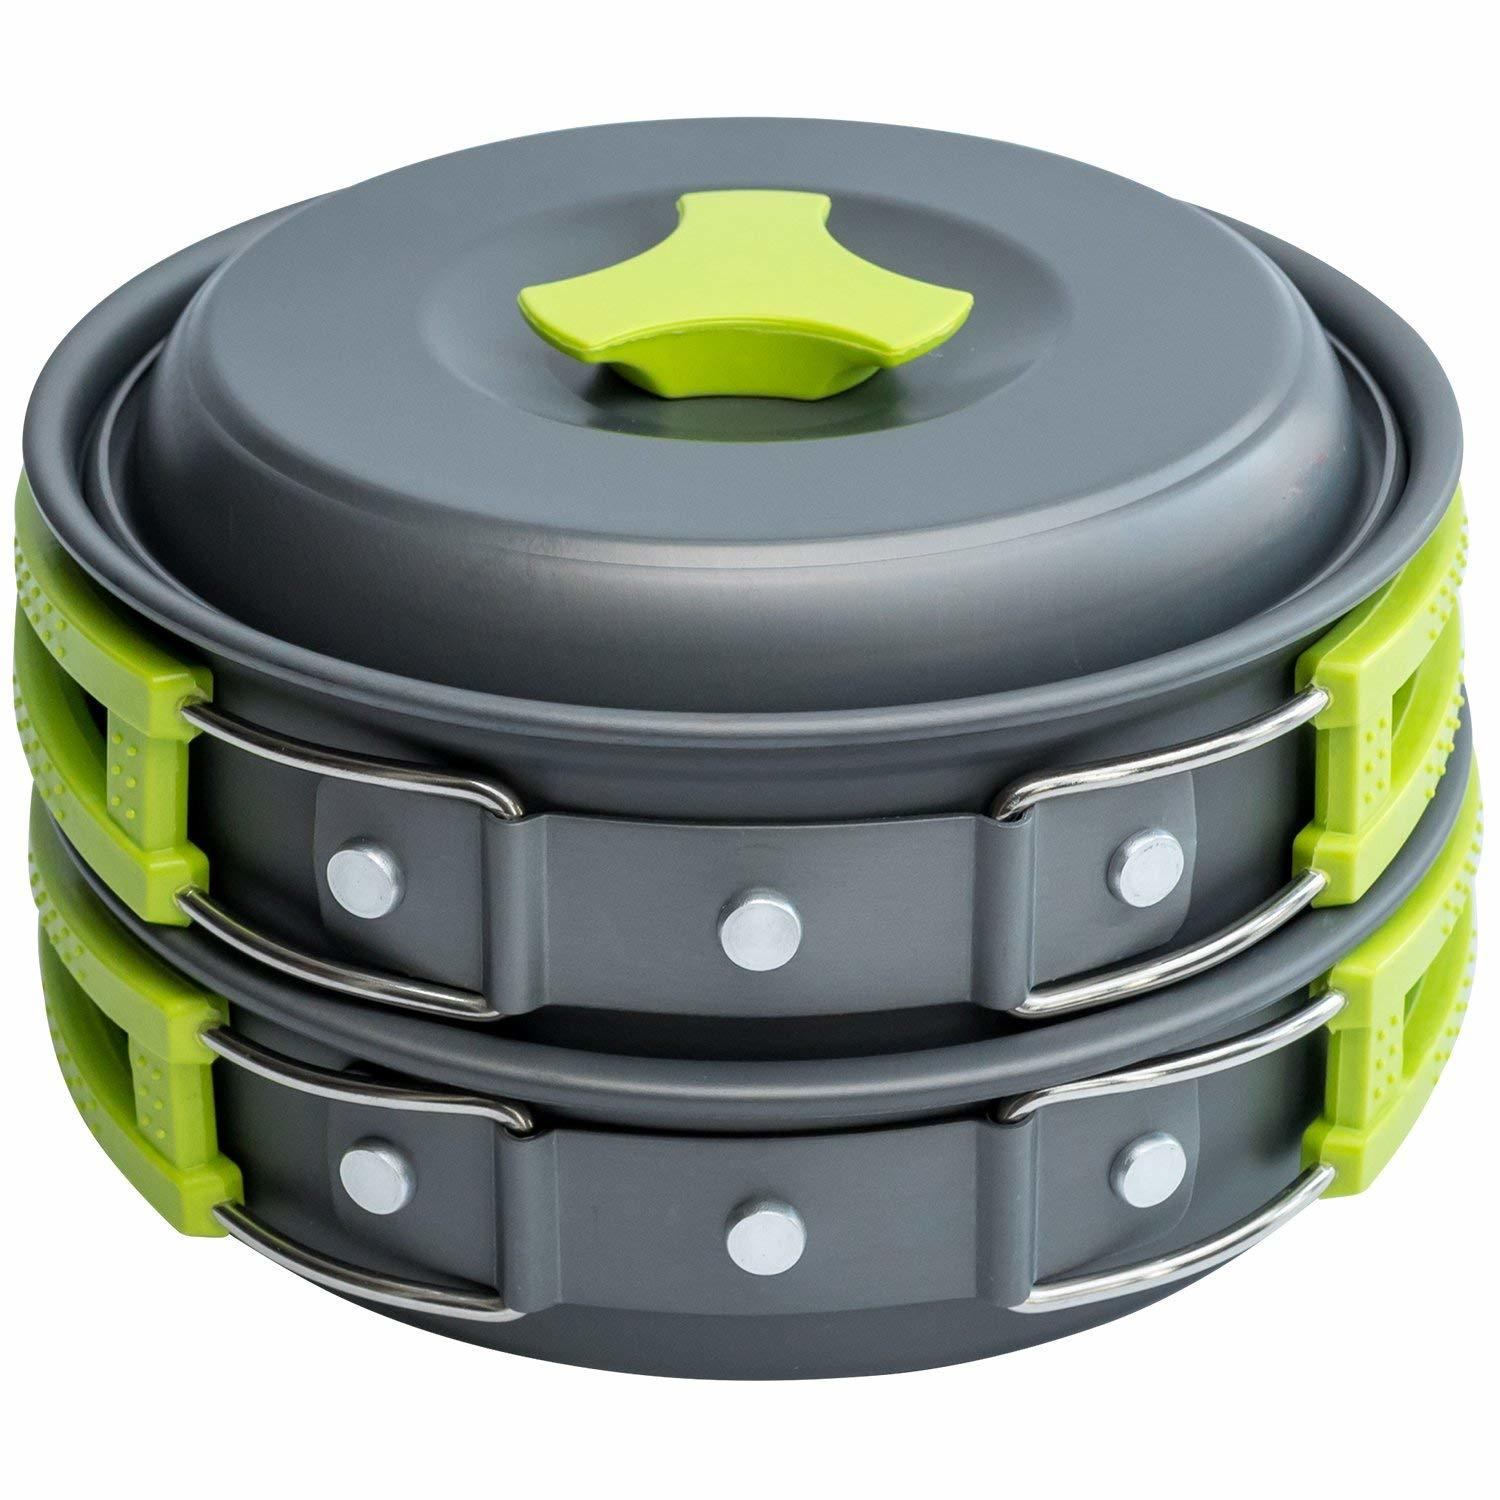 Liter Camping Cookware Mess Kit Backpacking Gear